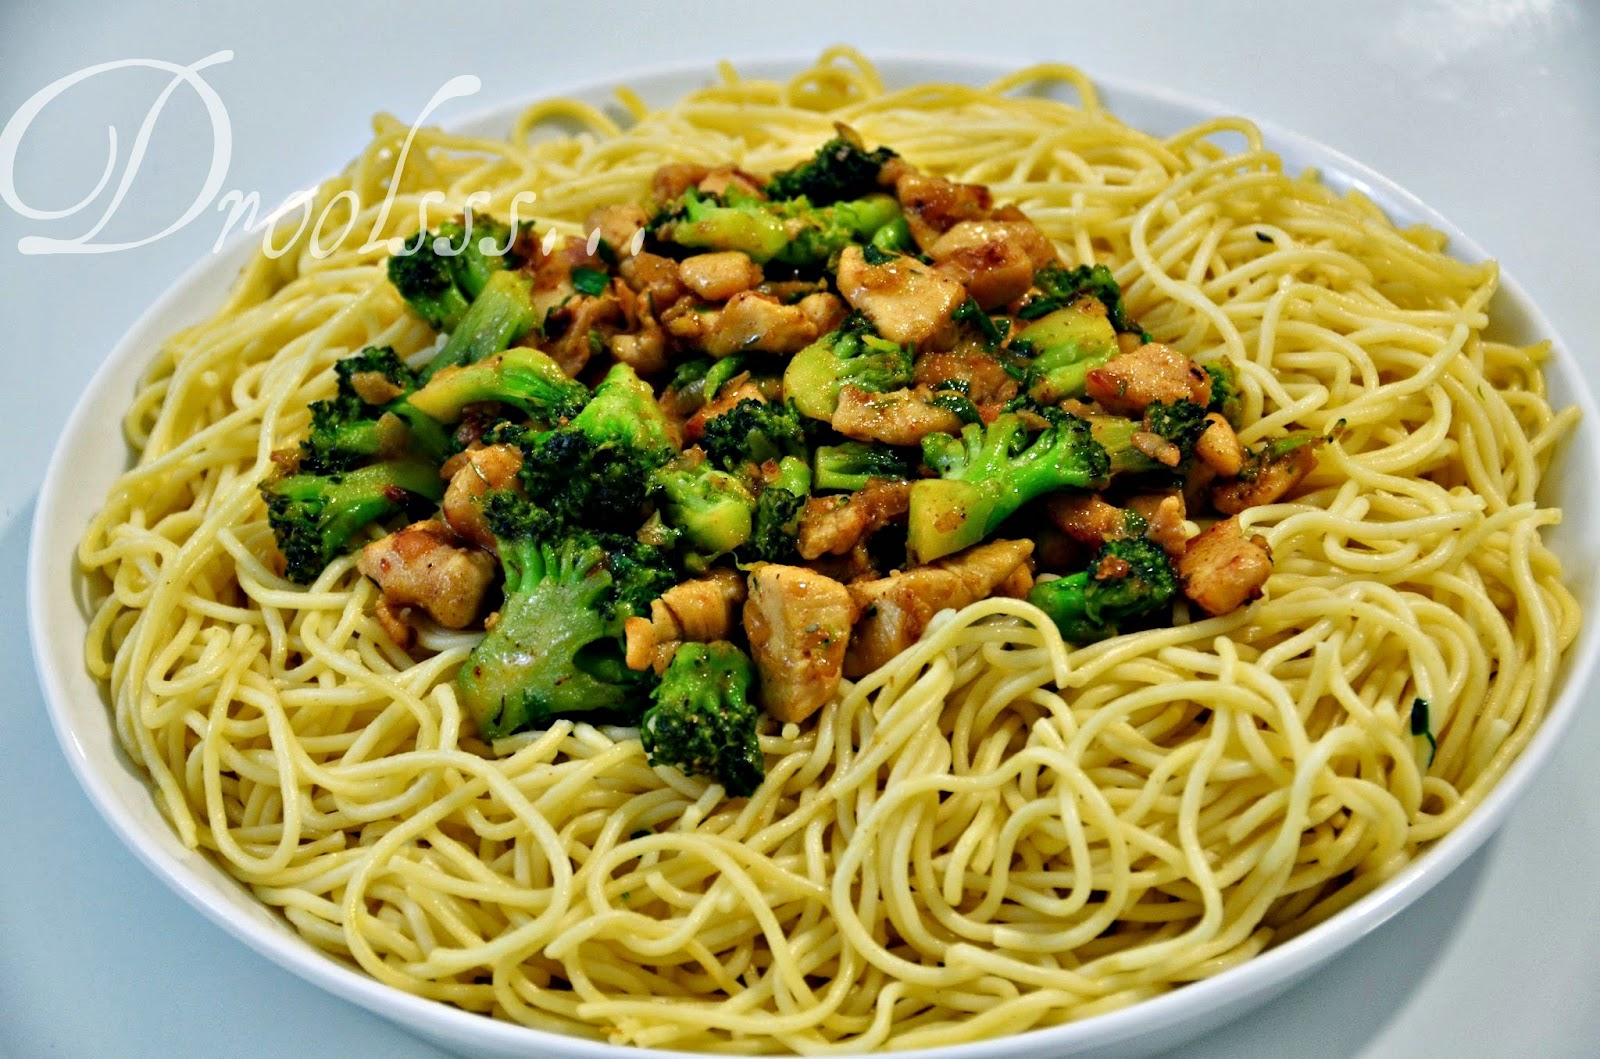 Droolsss . . .: Spaghetti with broccoli and chicken